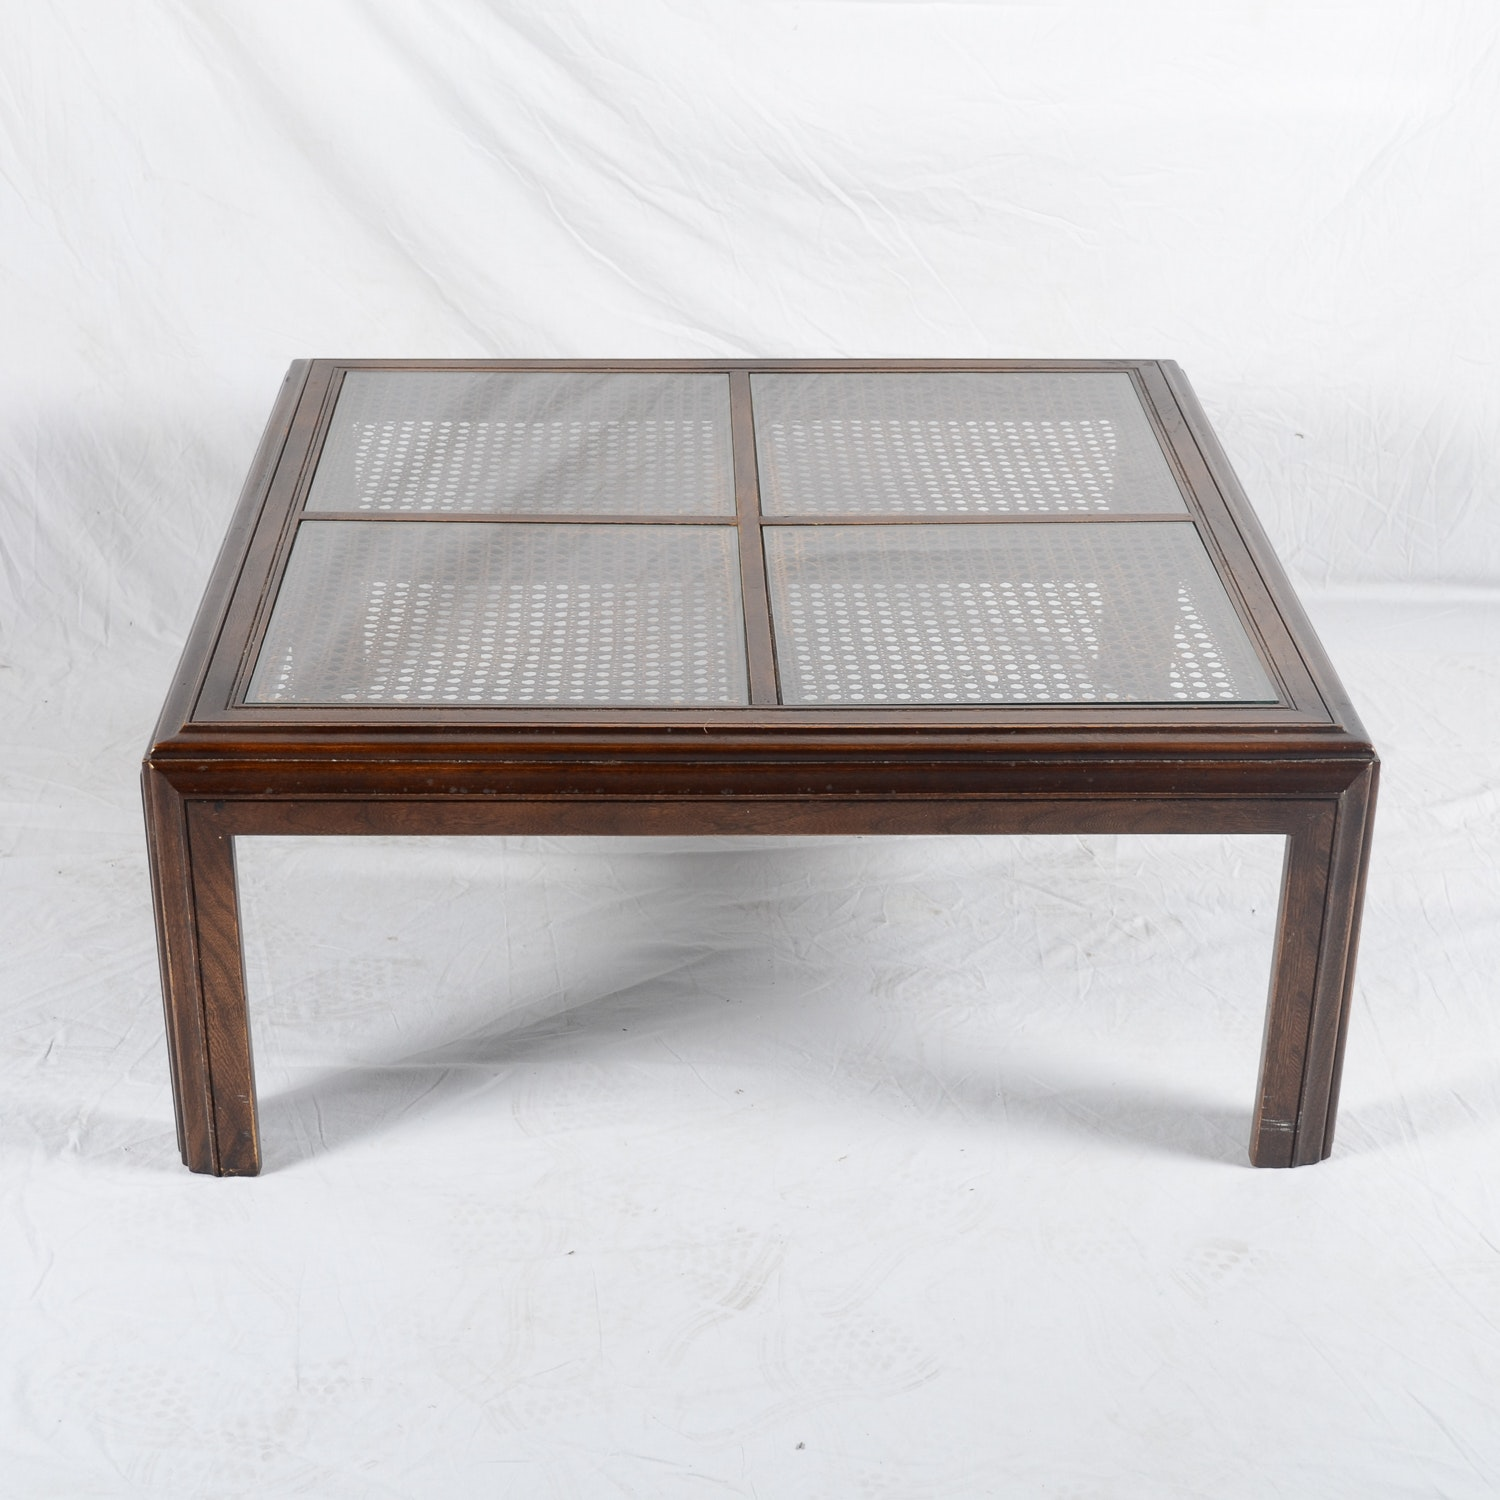 Delicieux Cane And Glass Top Coffee Table By Lane ...